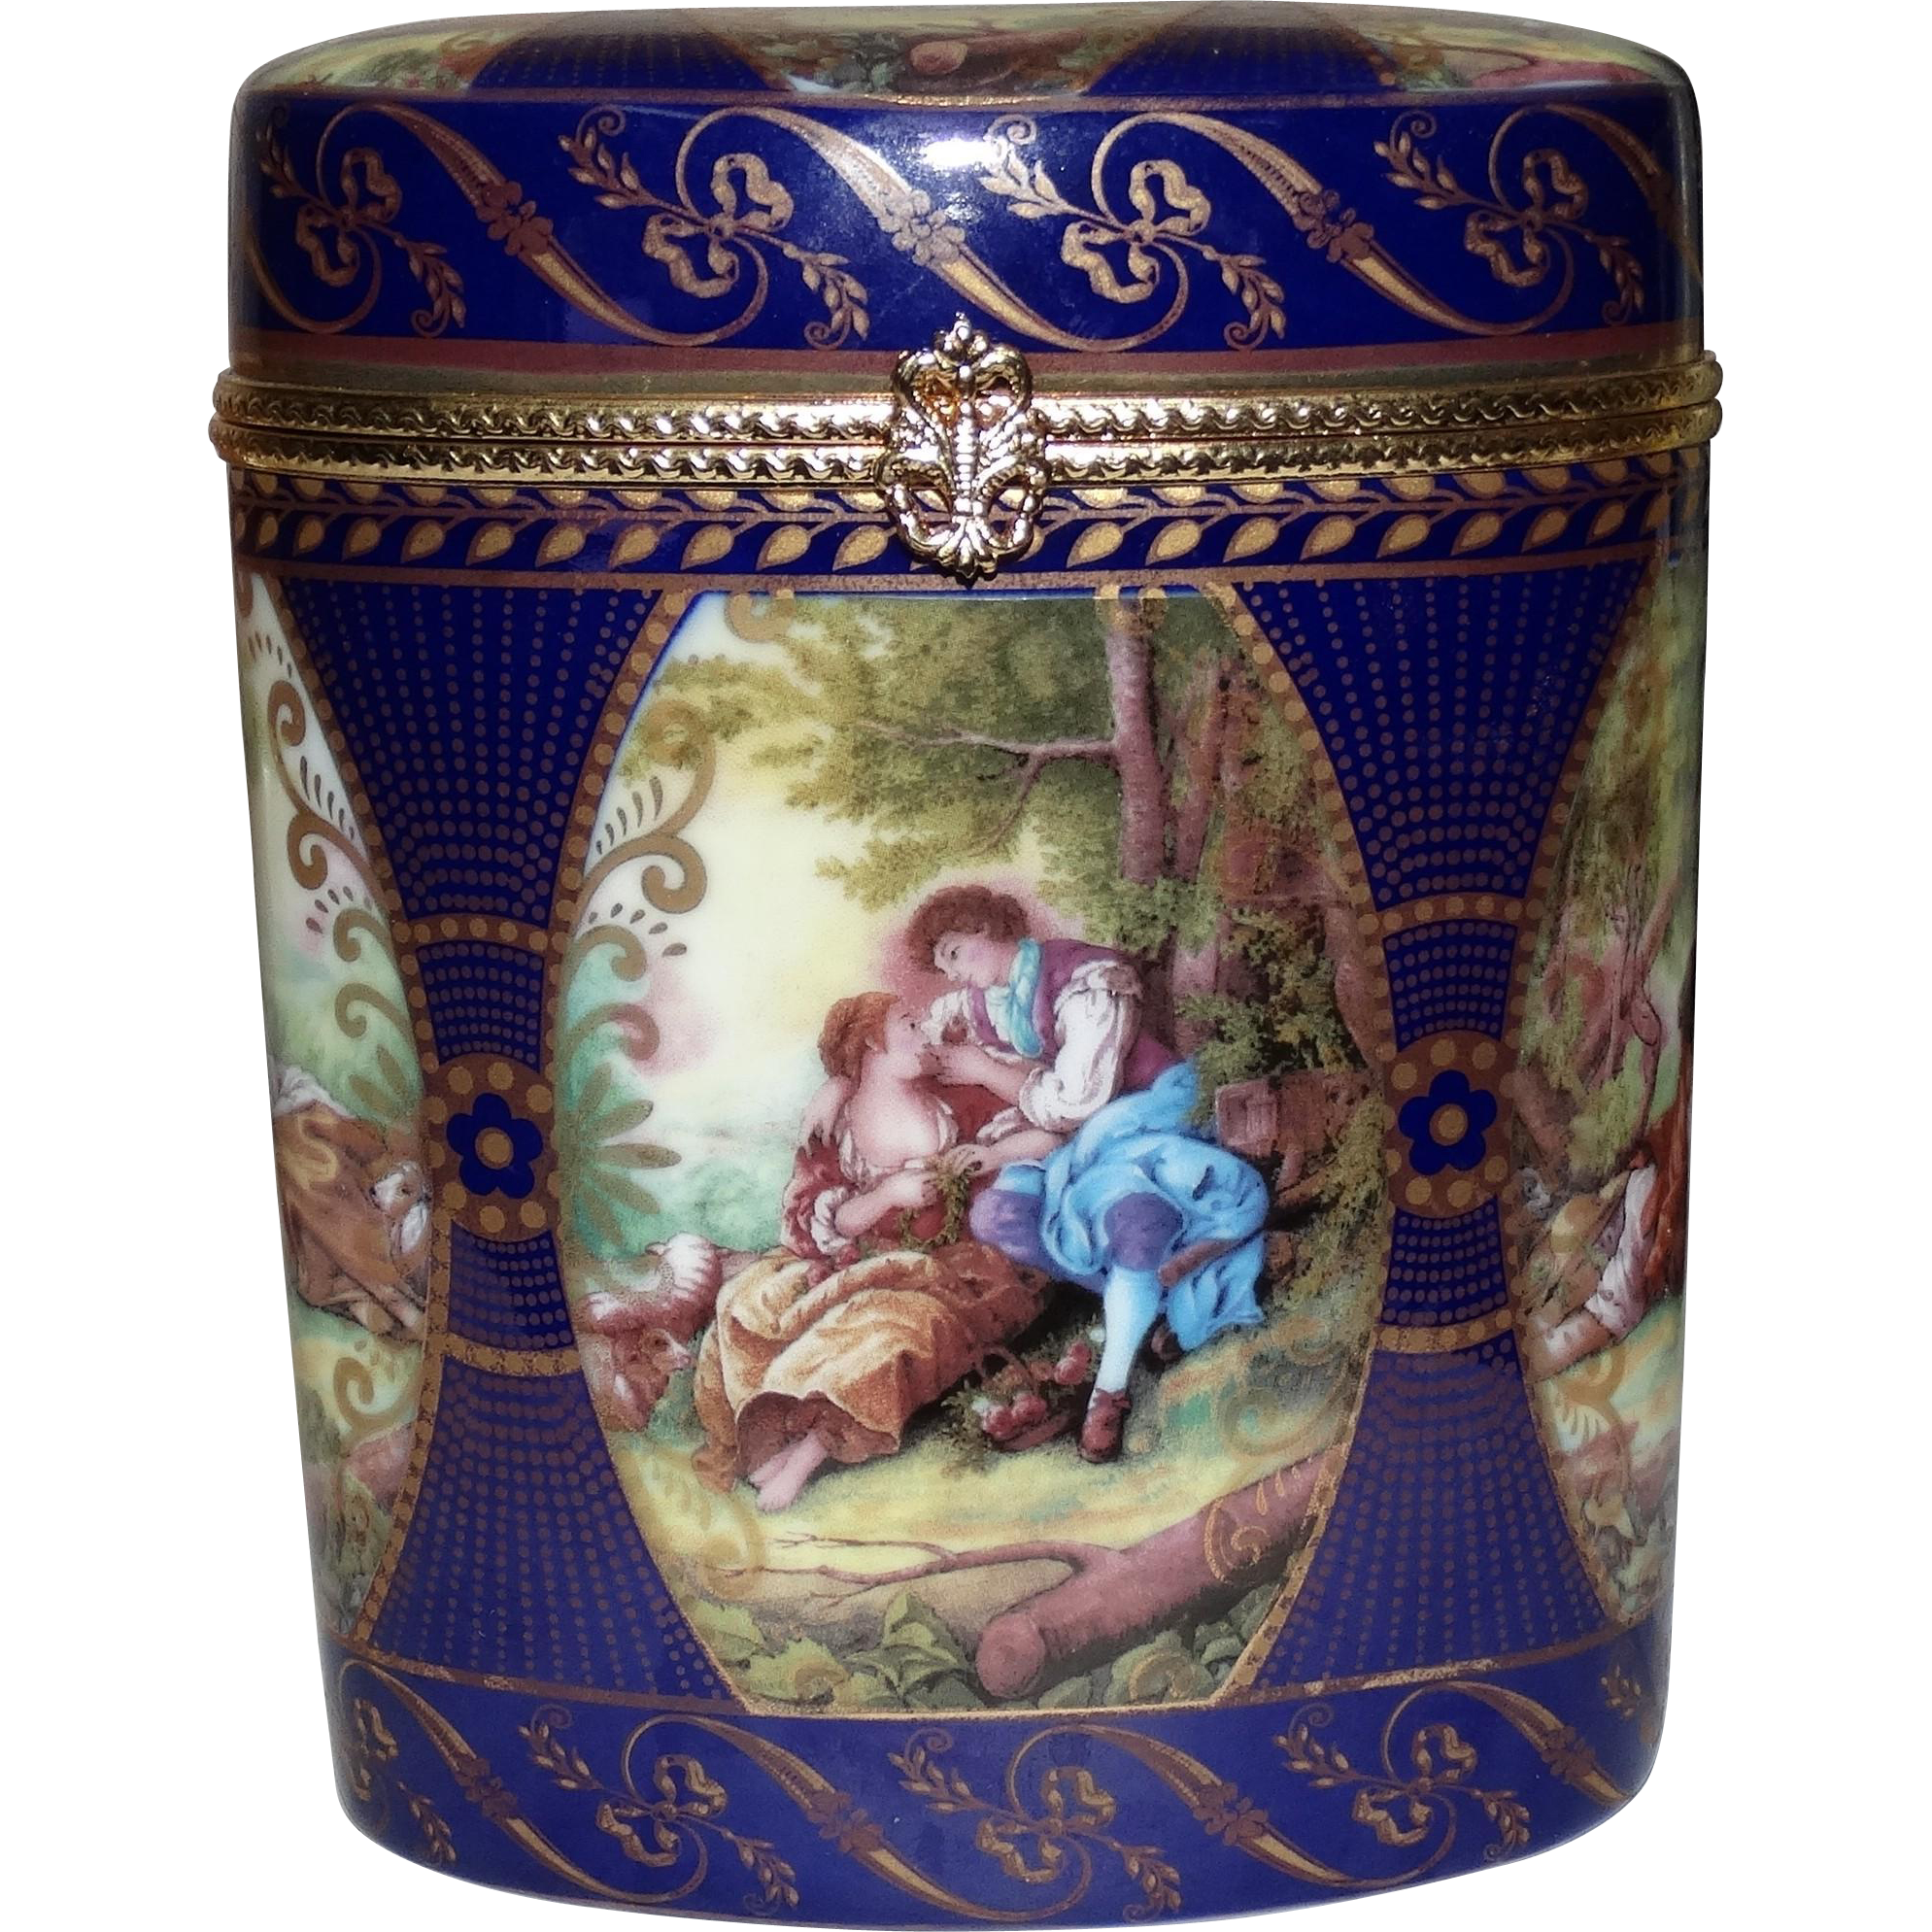 Limoges China signed Porcelain Box With Cobalt Decoration and Multiple European Scenes